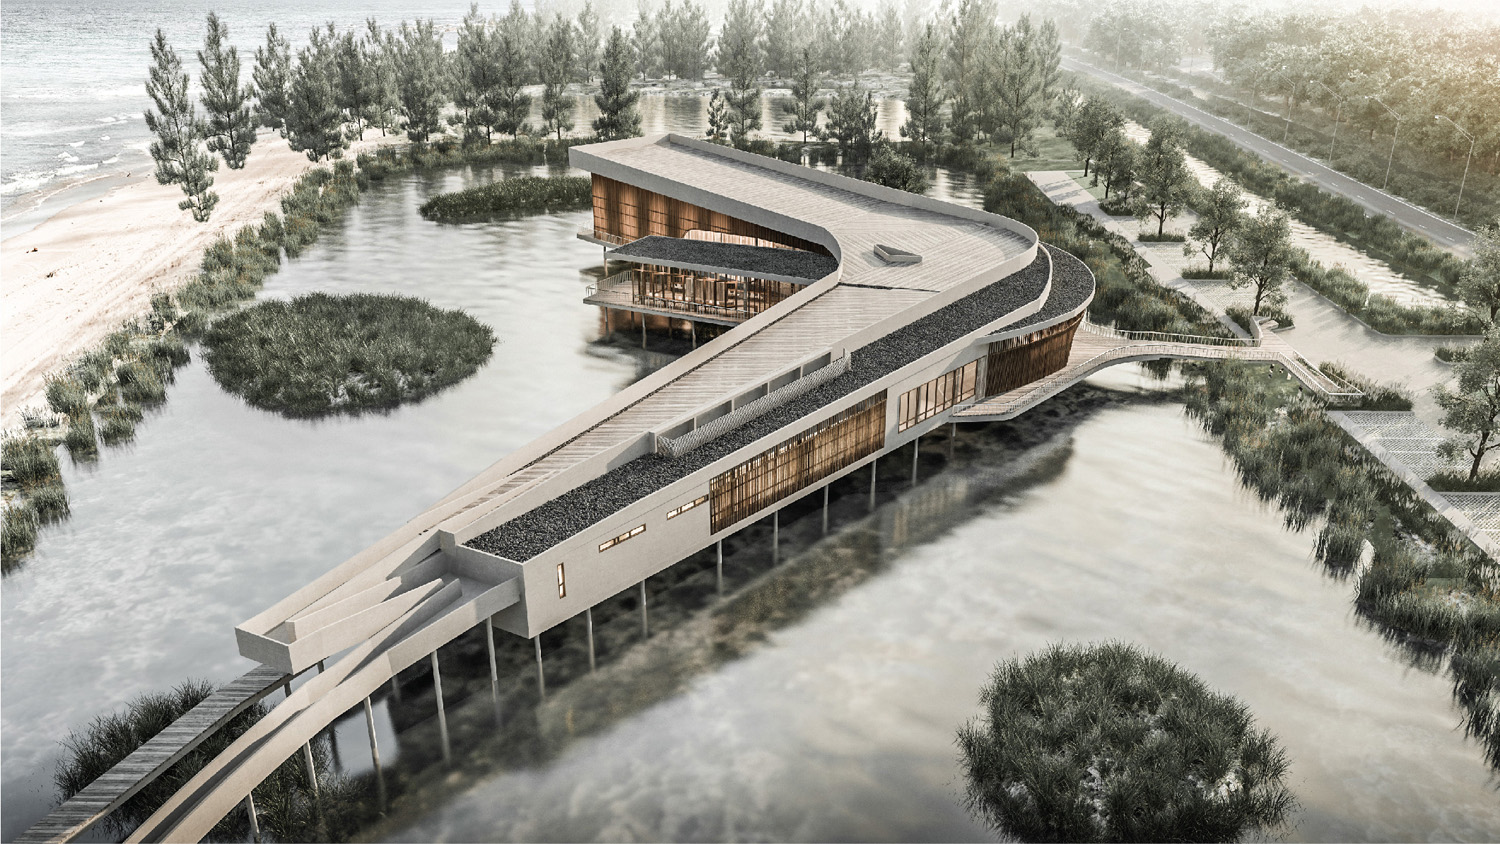 The Community Center that revive the abandoned water body Vaslab